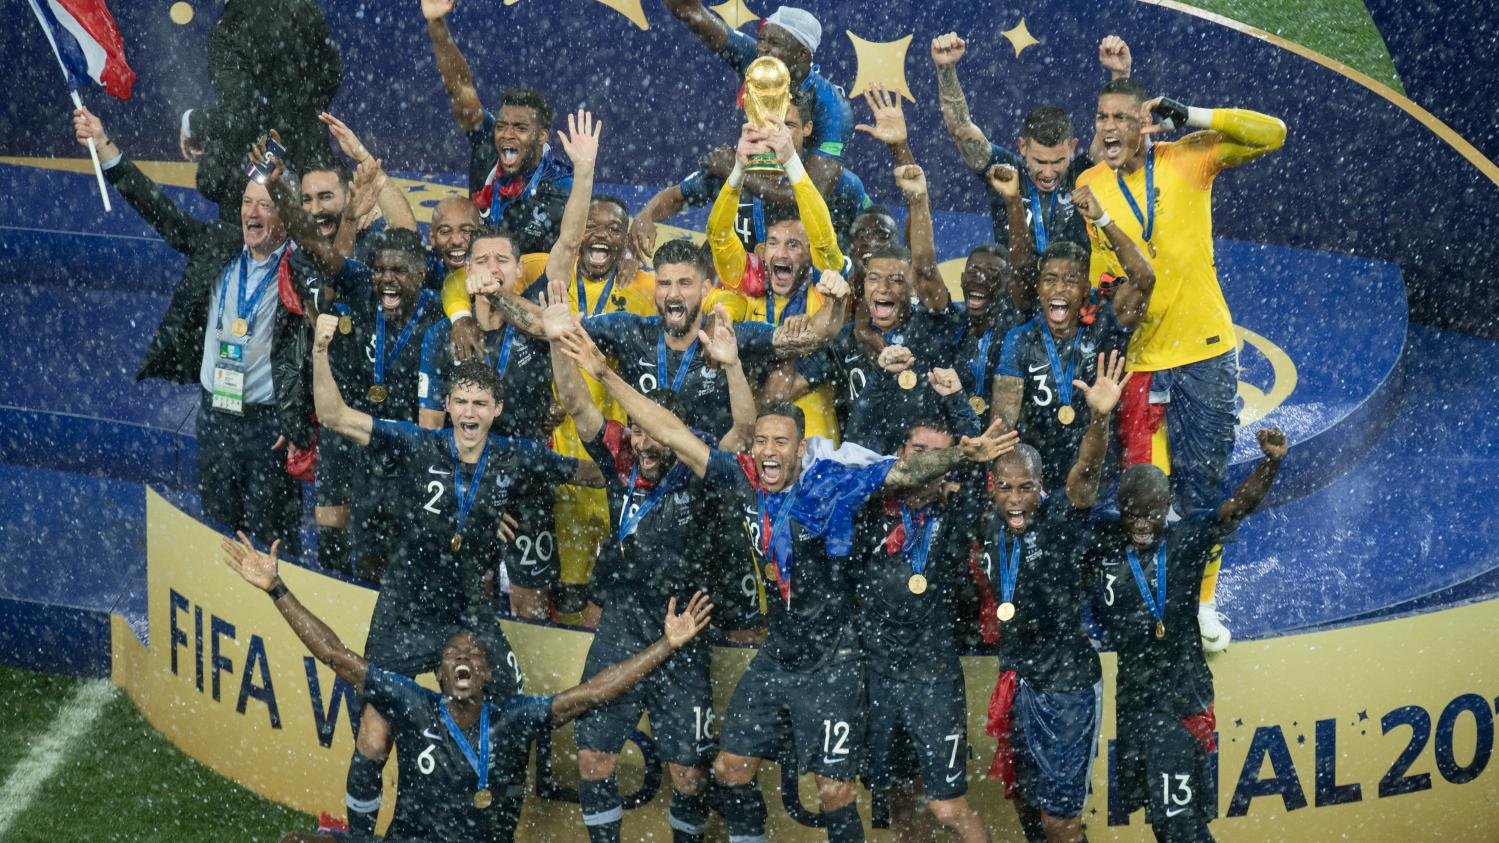 Direct coupe du monde 2018 regardez l 39 dition sp ciale du 13 heures de france 2 consacr e - Coupe de france en direct france 2 ...